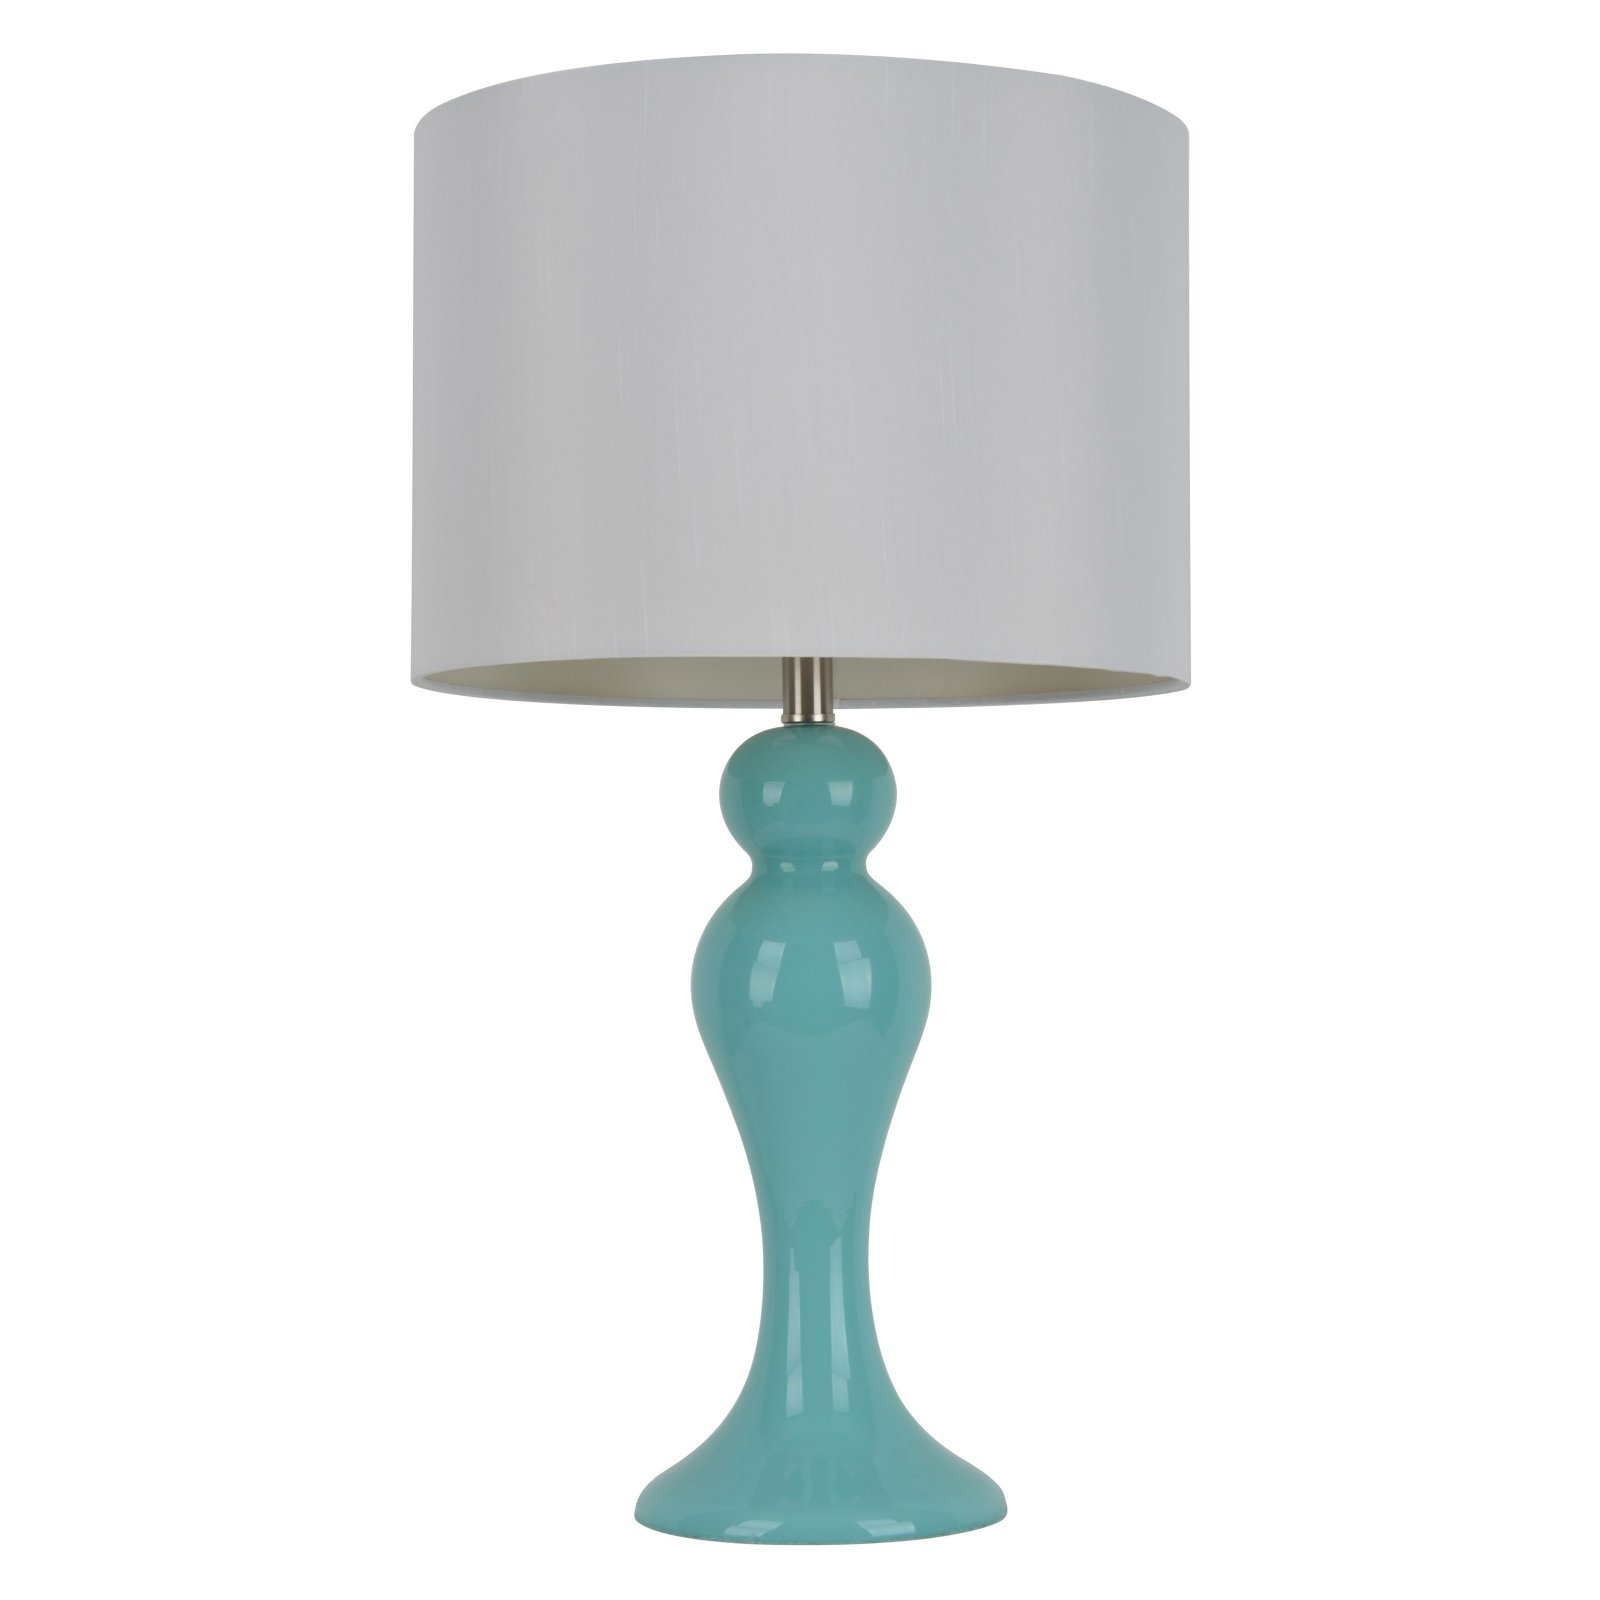 Teal Glass Table Lamp by Jimco Lamp & Manufacturing